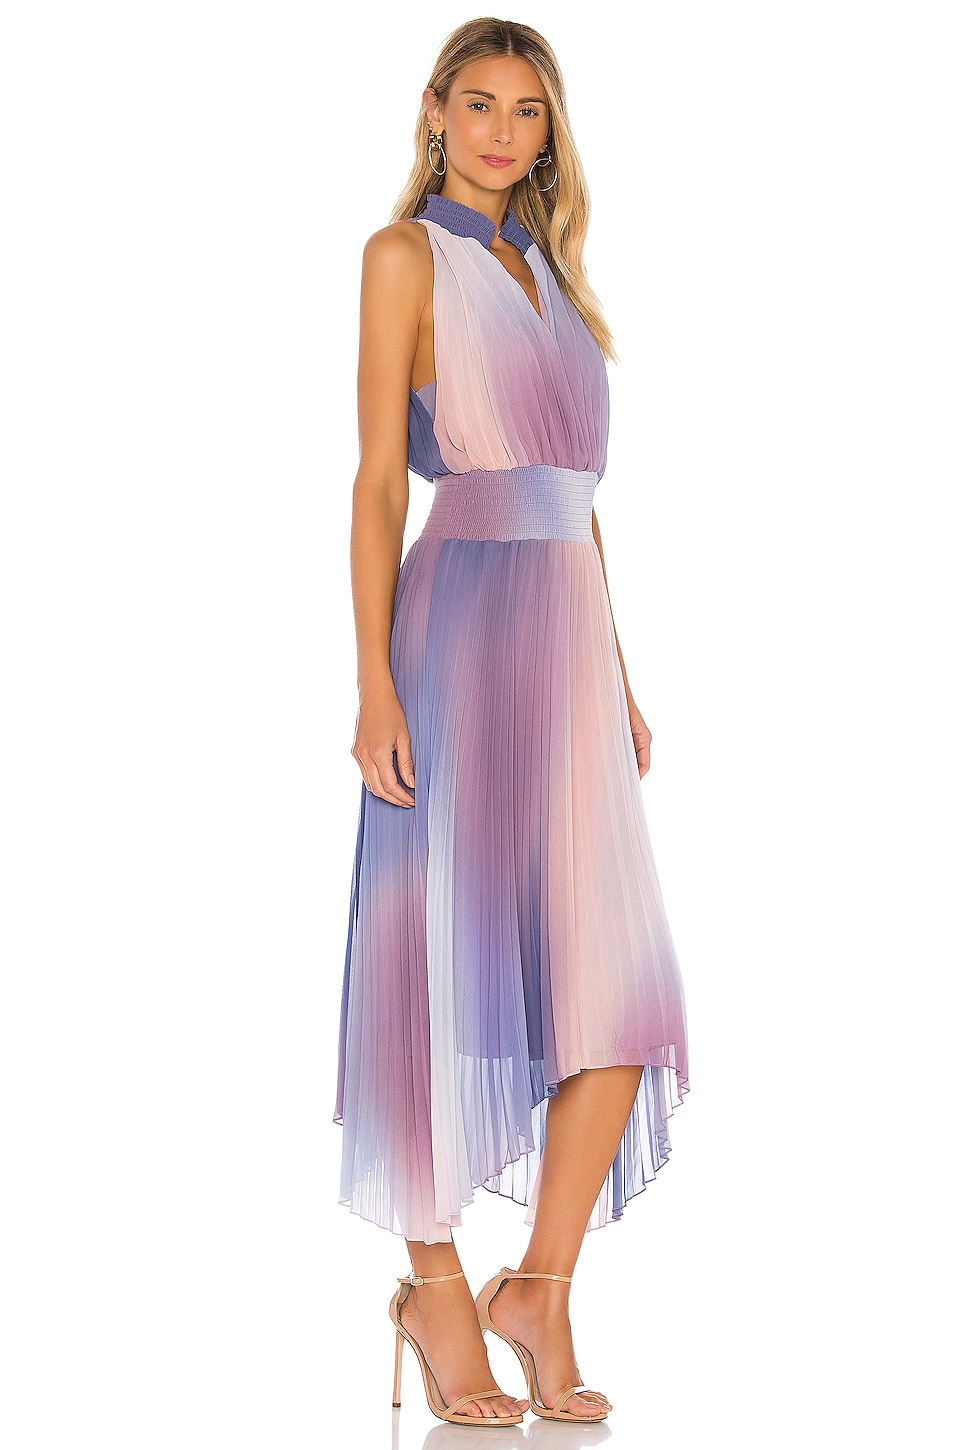 Halter Neck Pleated Midi Dress, view 2, click to view large image.